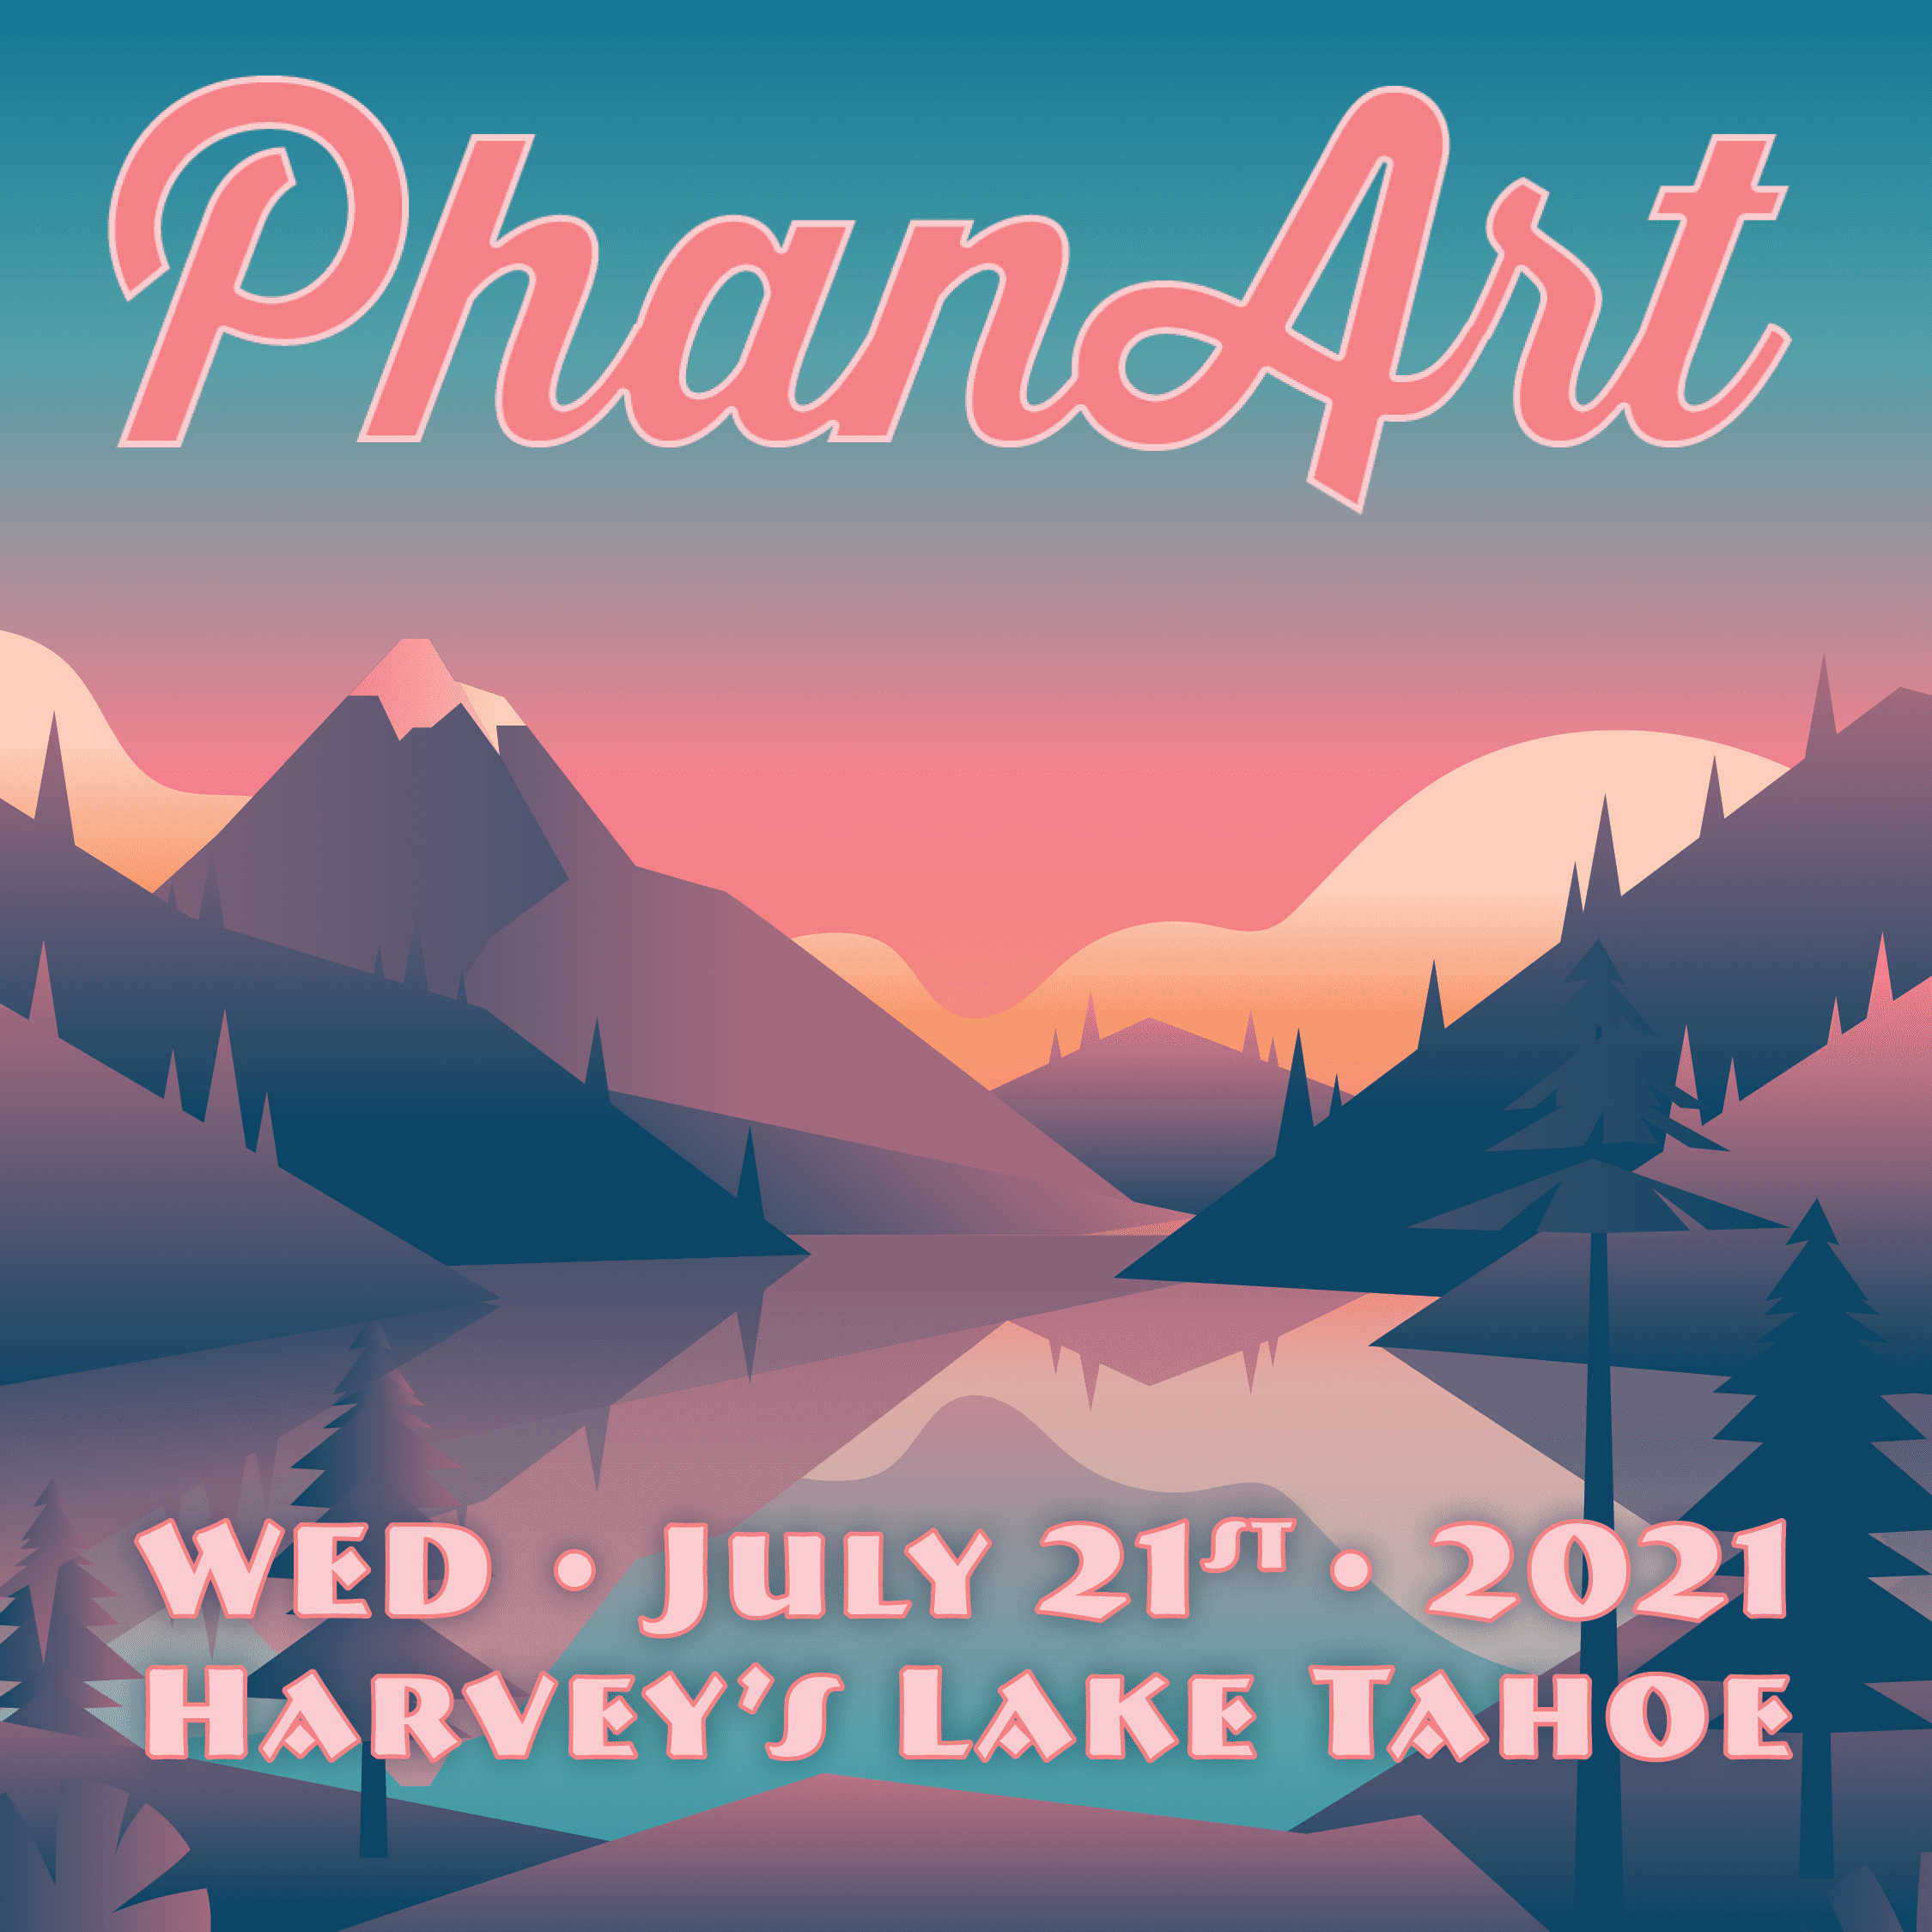 PhanArt Lake Tahoe 2021